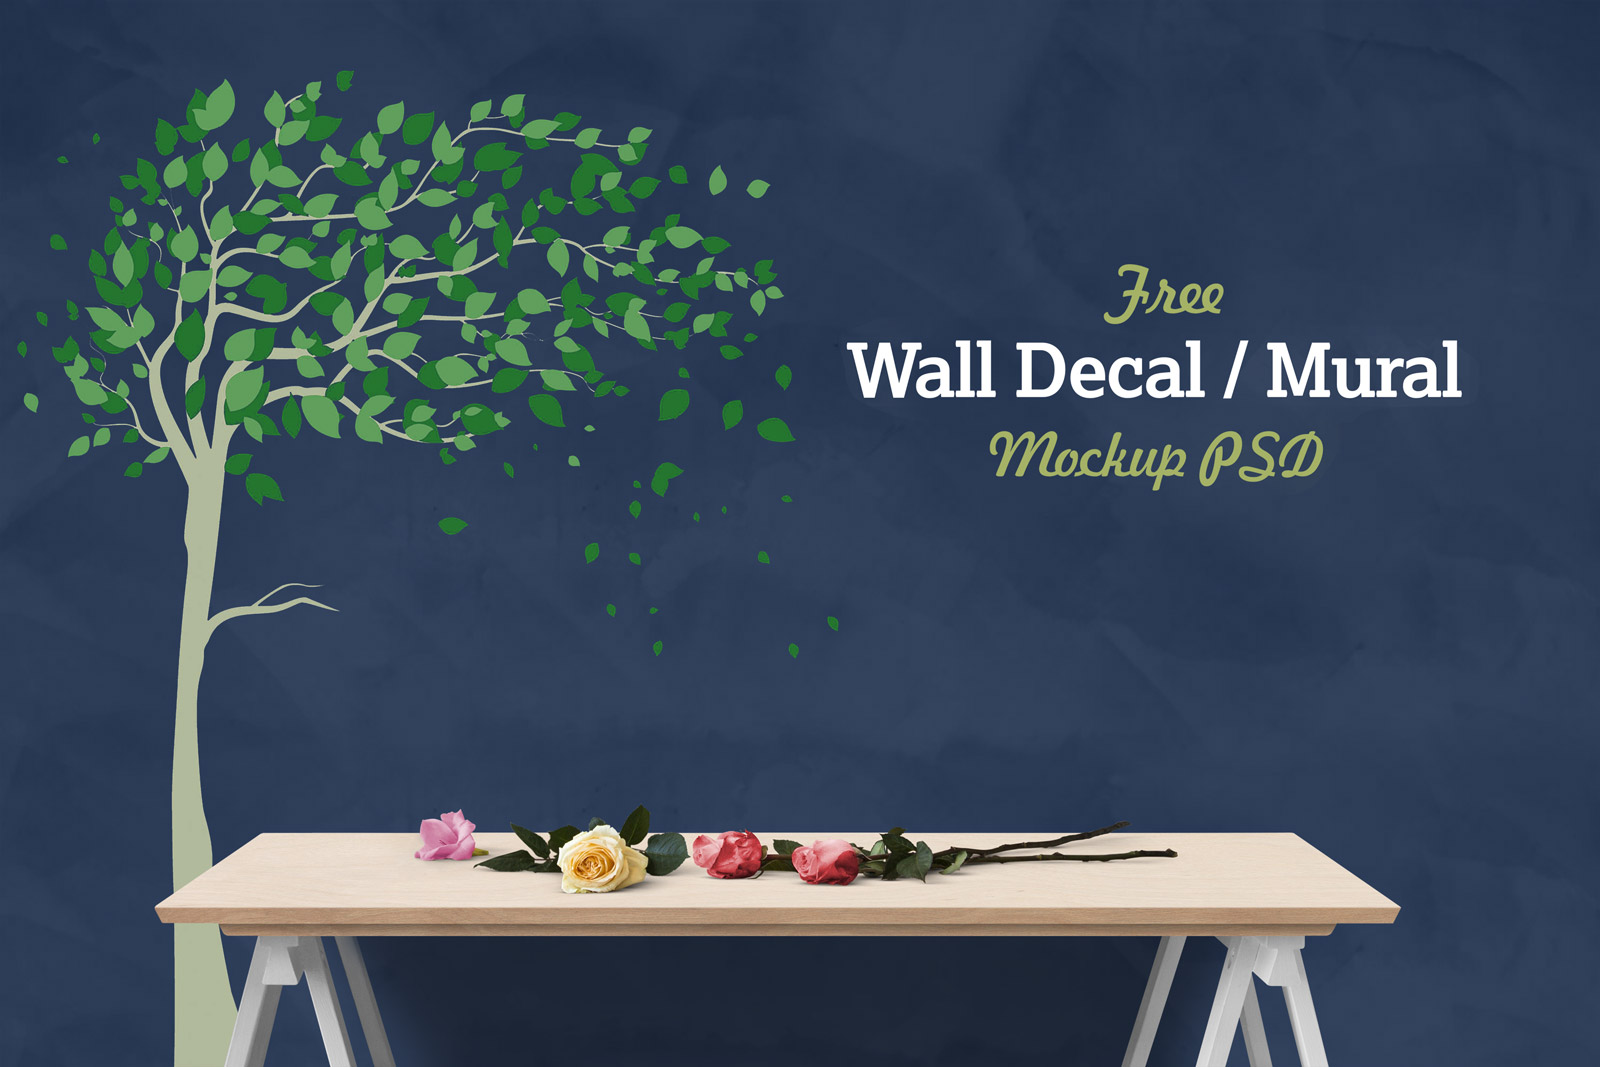 Free-Vinyl-Wall-Decal-Mural-Sticker-Art-Mockup-PSD-2